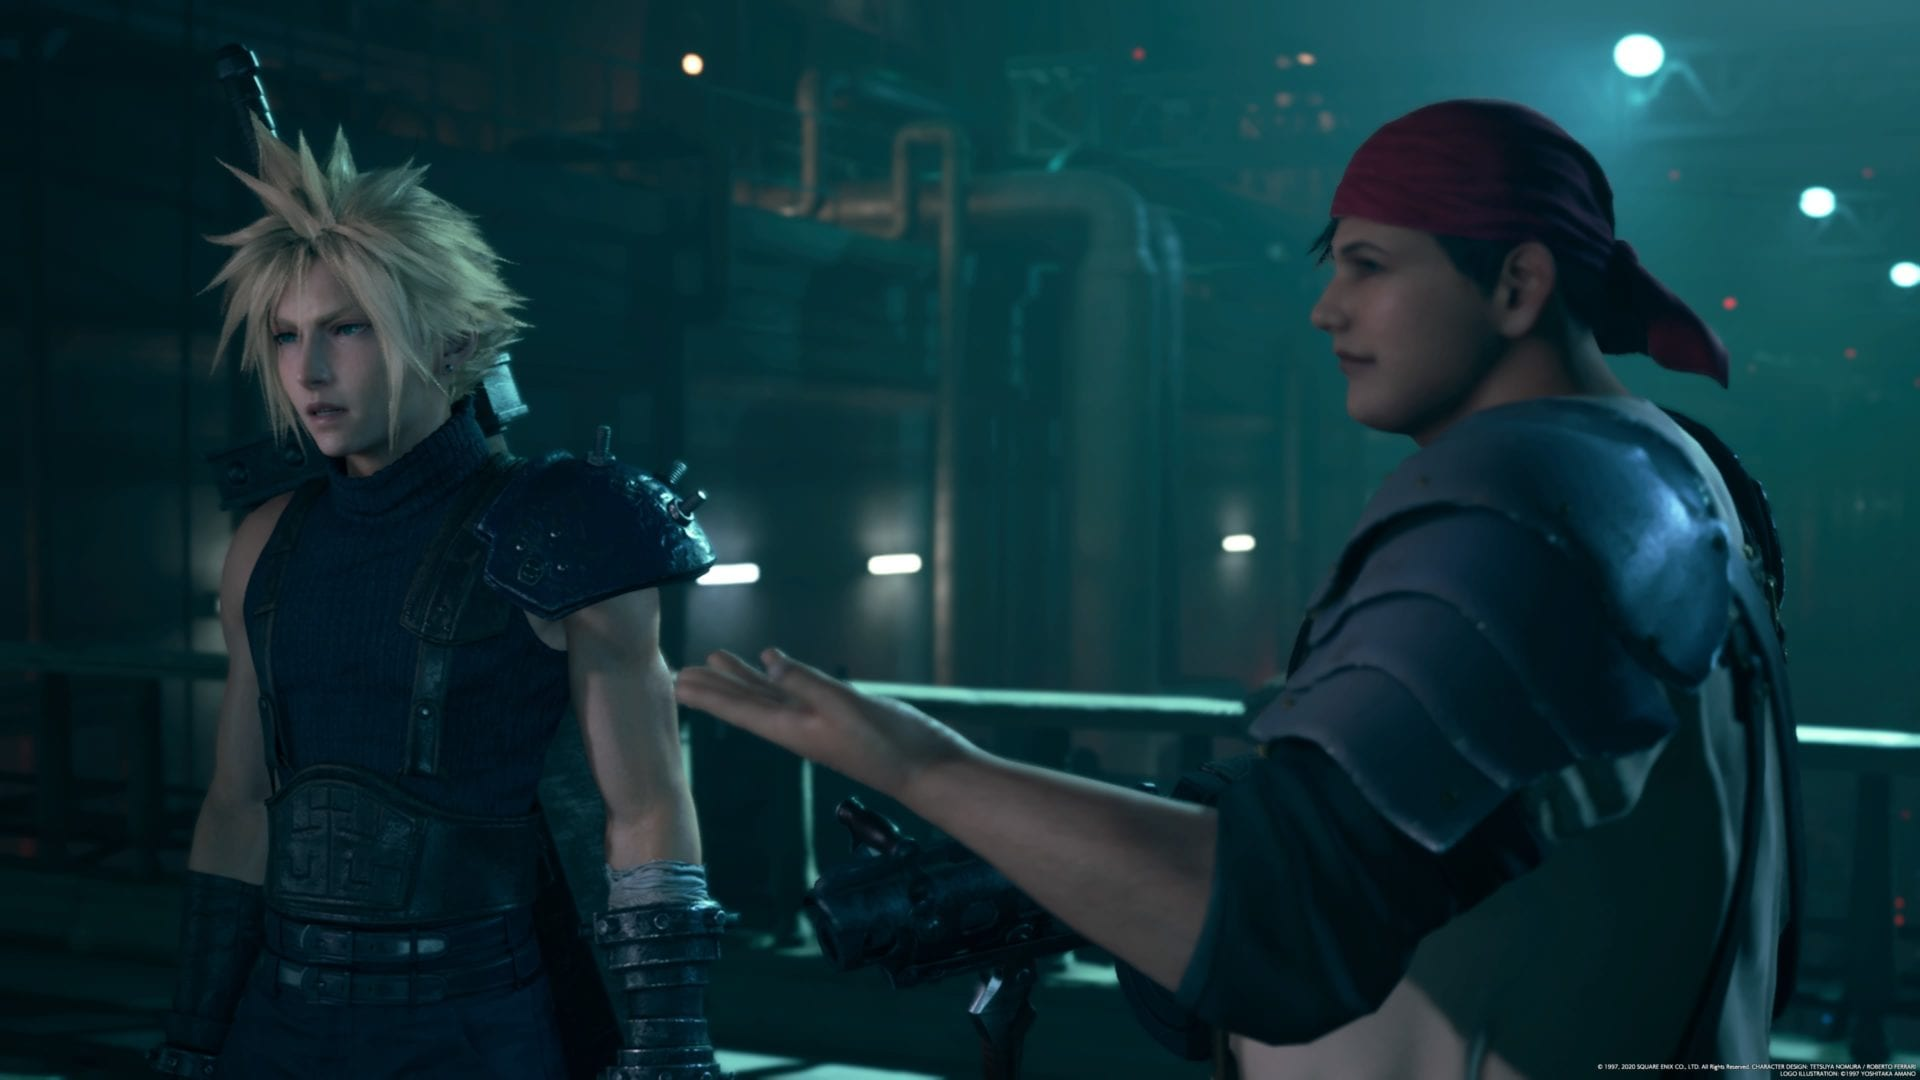 Jessie Biggs And Wedge Are The Real Heart Of Final Fantasy Vii Remake